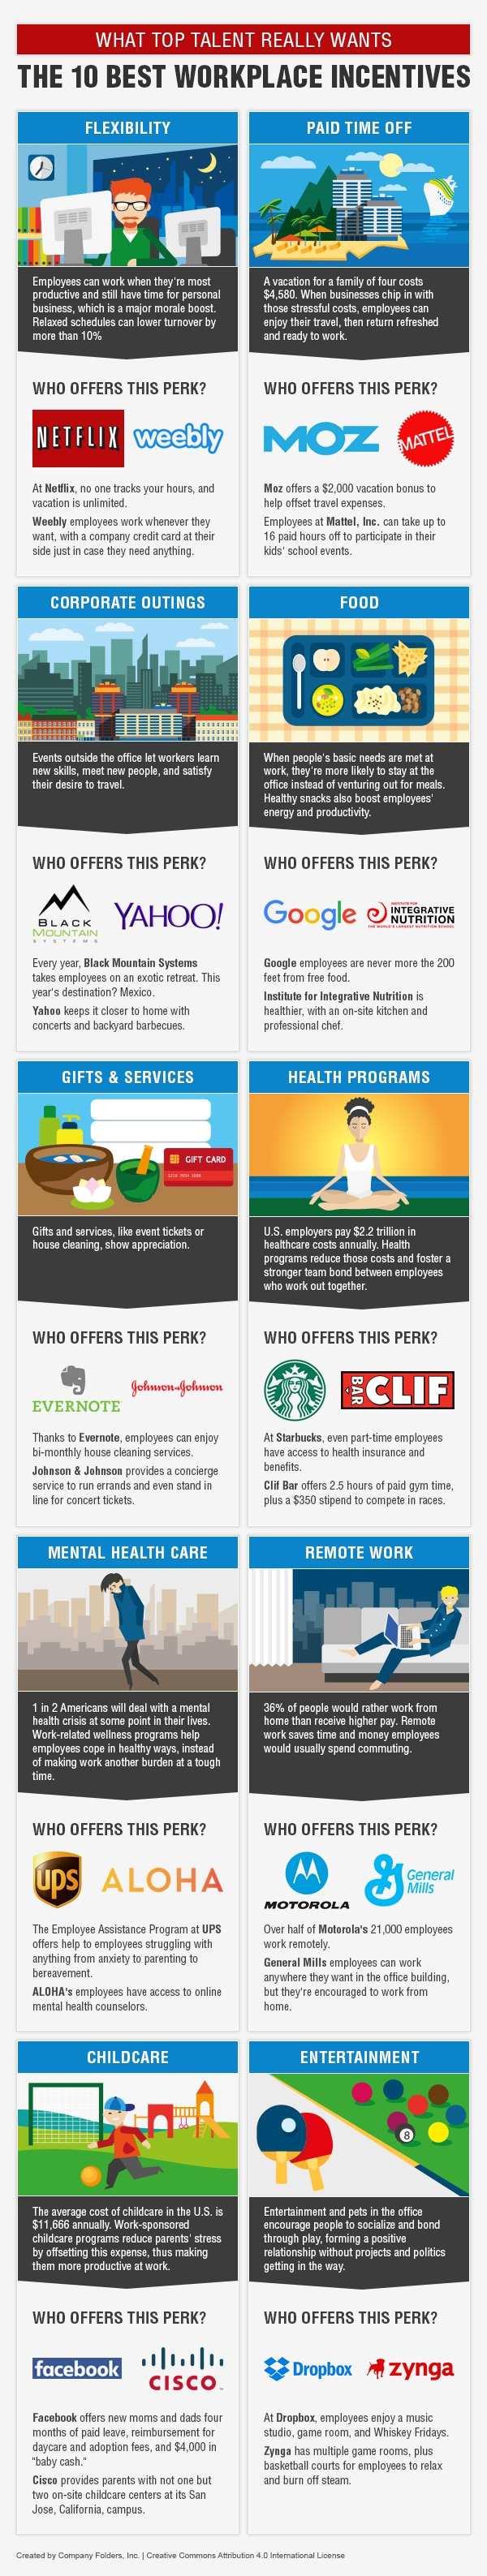 Business Owner Employee Perks Infographic